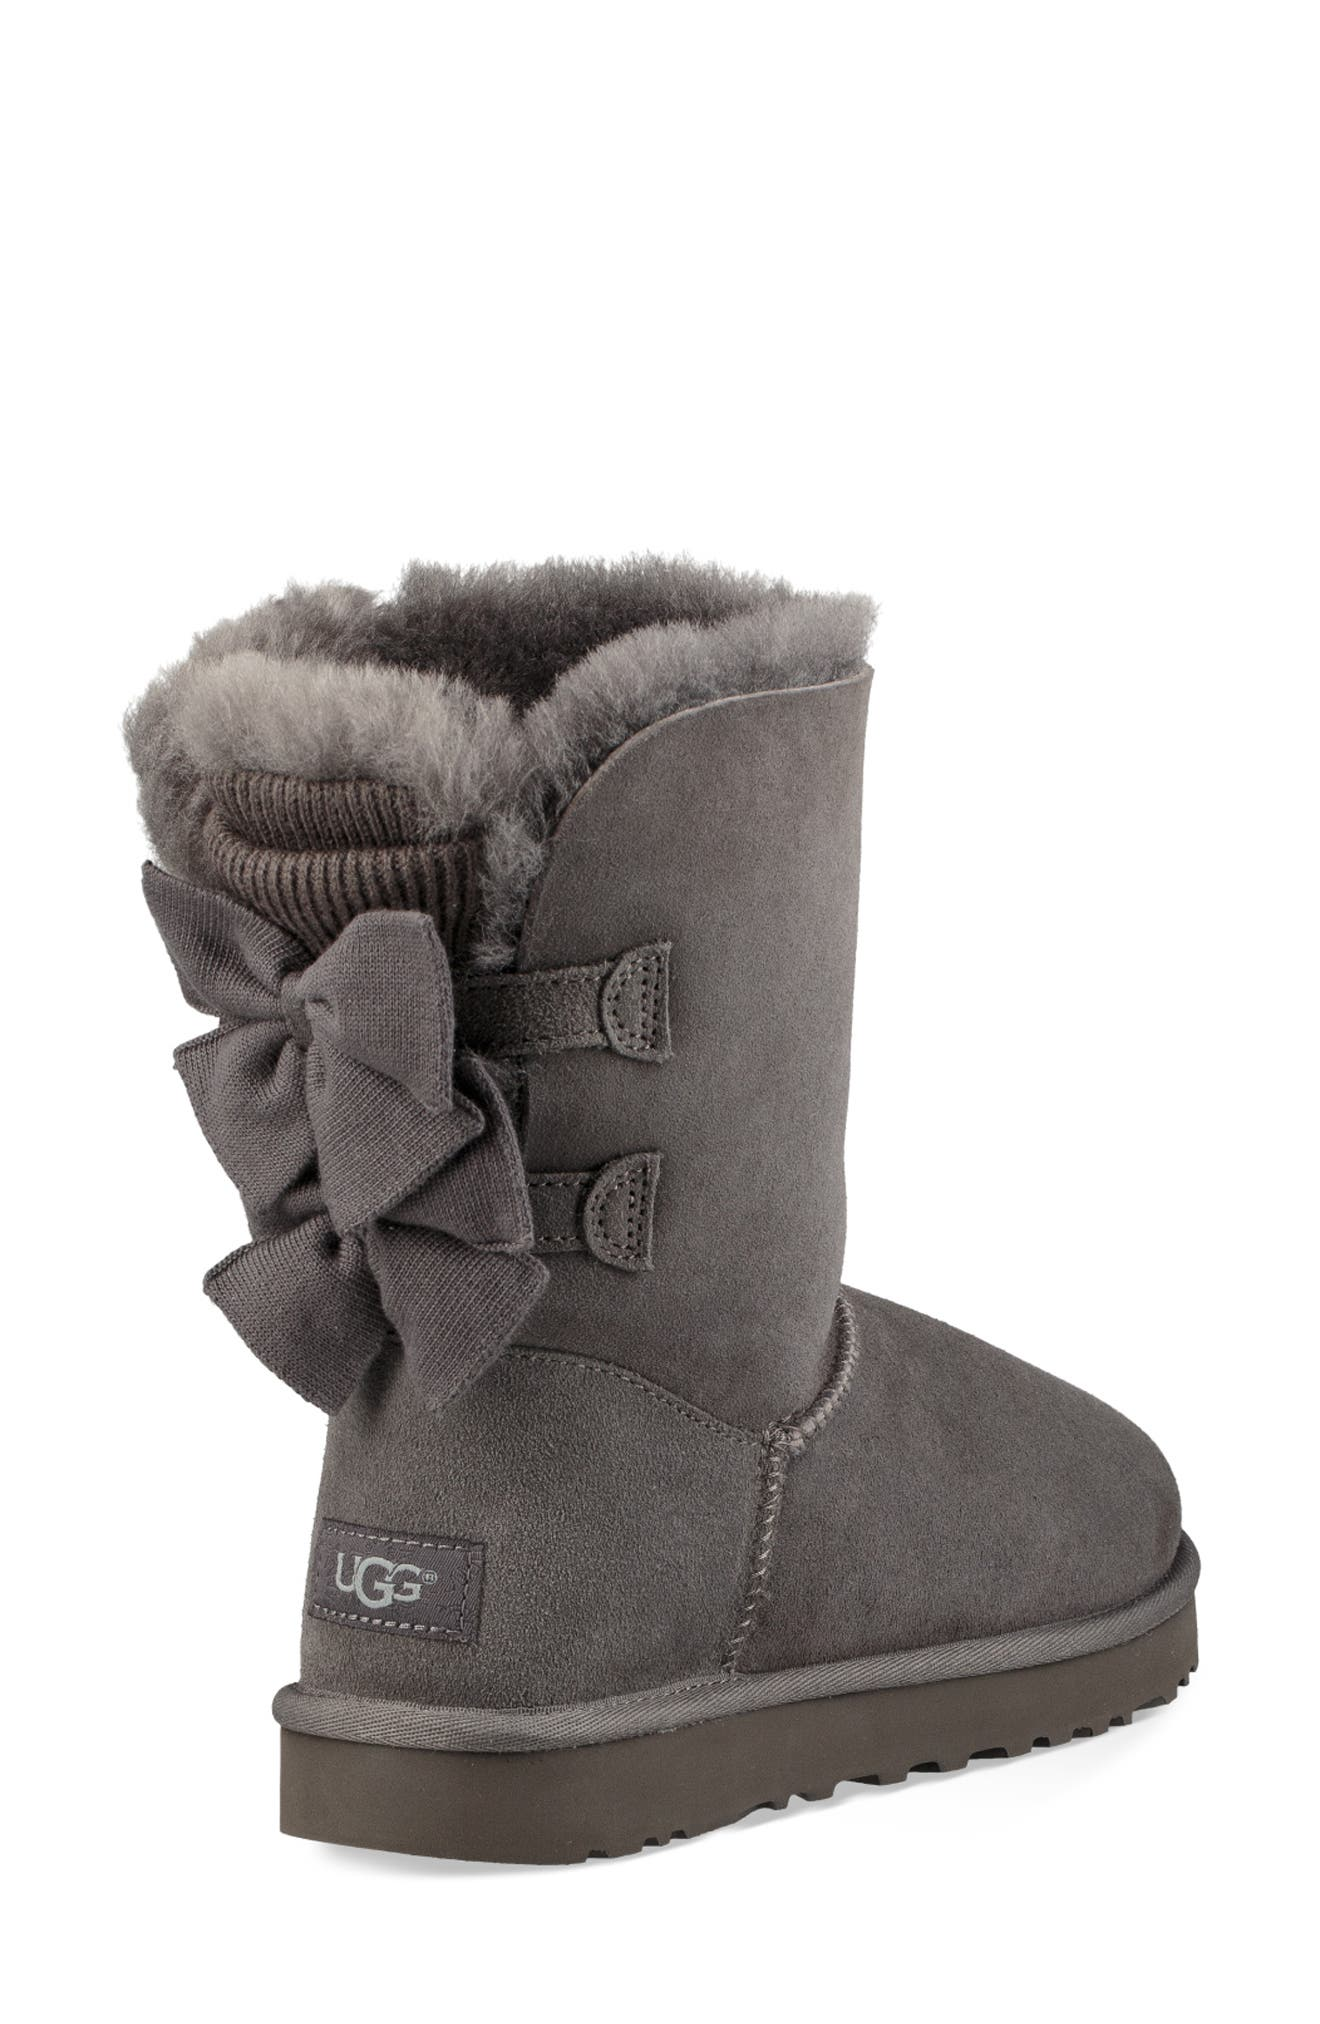 Bailey Bow Genuine Shearling Bootie,                             Alternate thumbnail 2, color,                             020